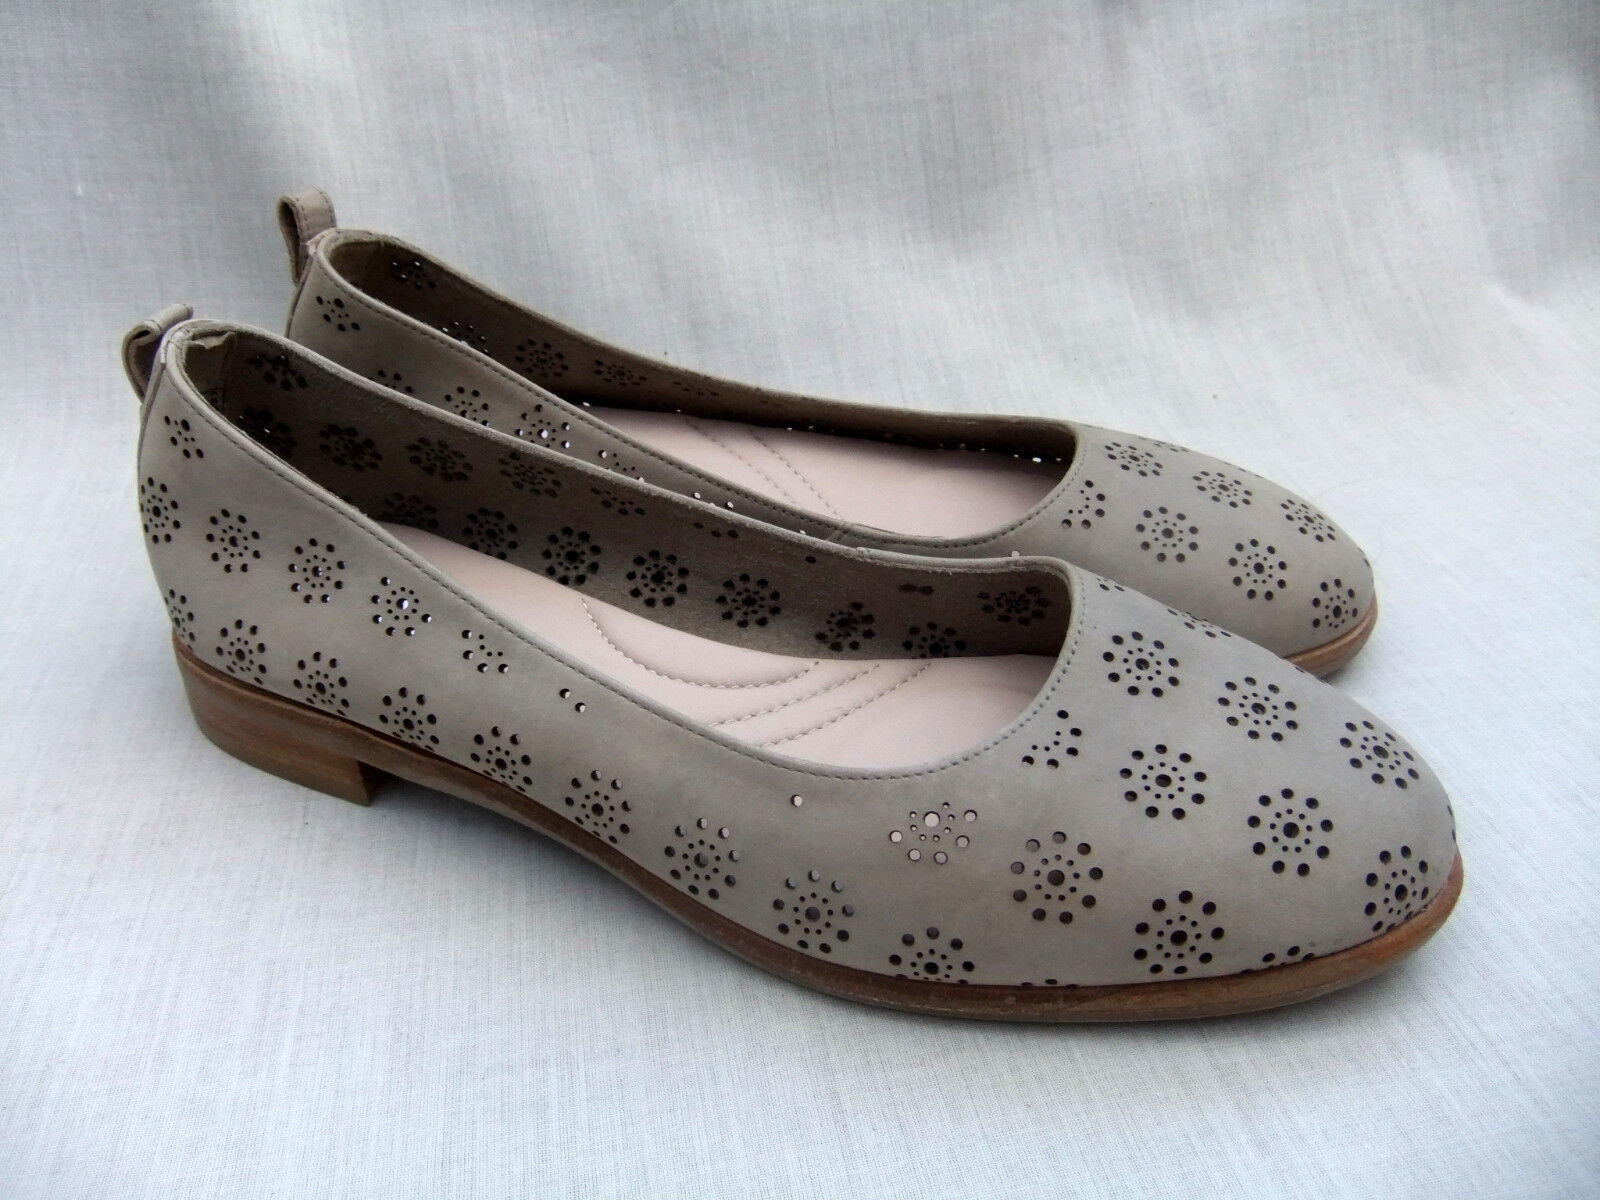 NEW CLARKS ALANIA rose femmes SAND NUBUCK LEATHER chaussures